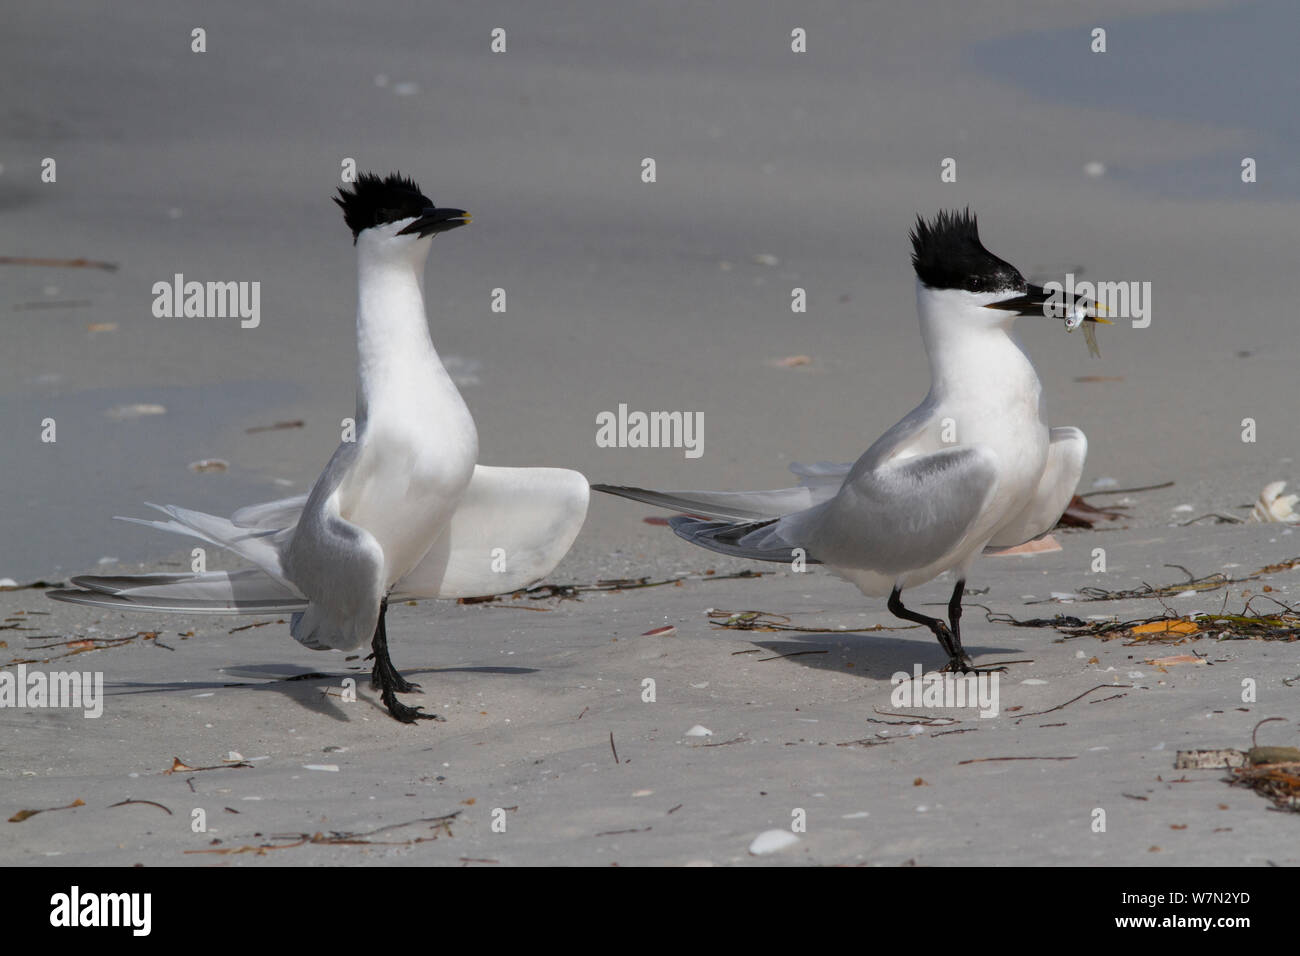 Sandwich Terns (Thalasseus sandvicensis) on sandy, Gulf of Mexico beach; male with a small fish, probably a Scaled Sardine, which it will eventually offer to a female as part of courtship ritual. St. Petersburg, Florida, USA, April. Stock Photo